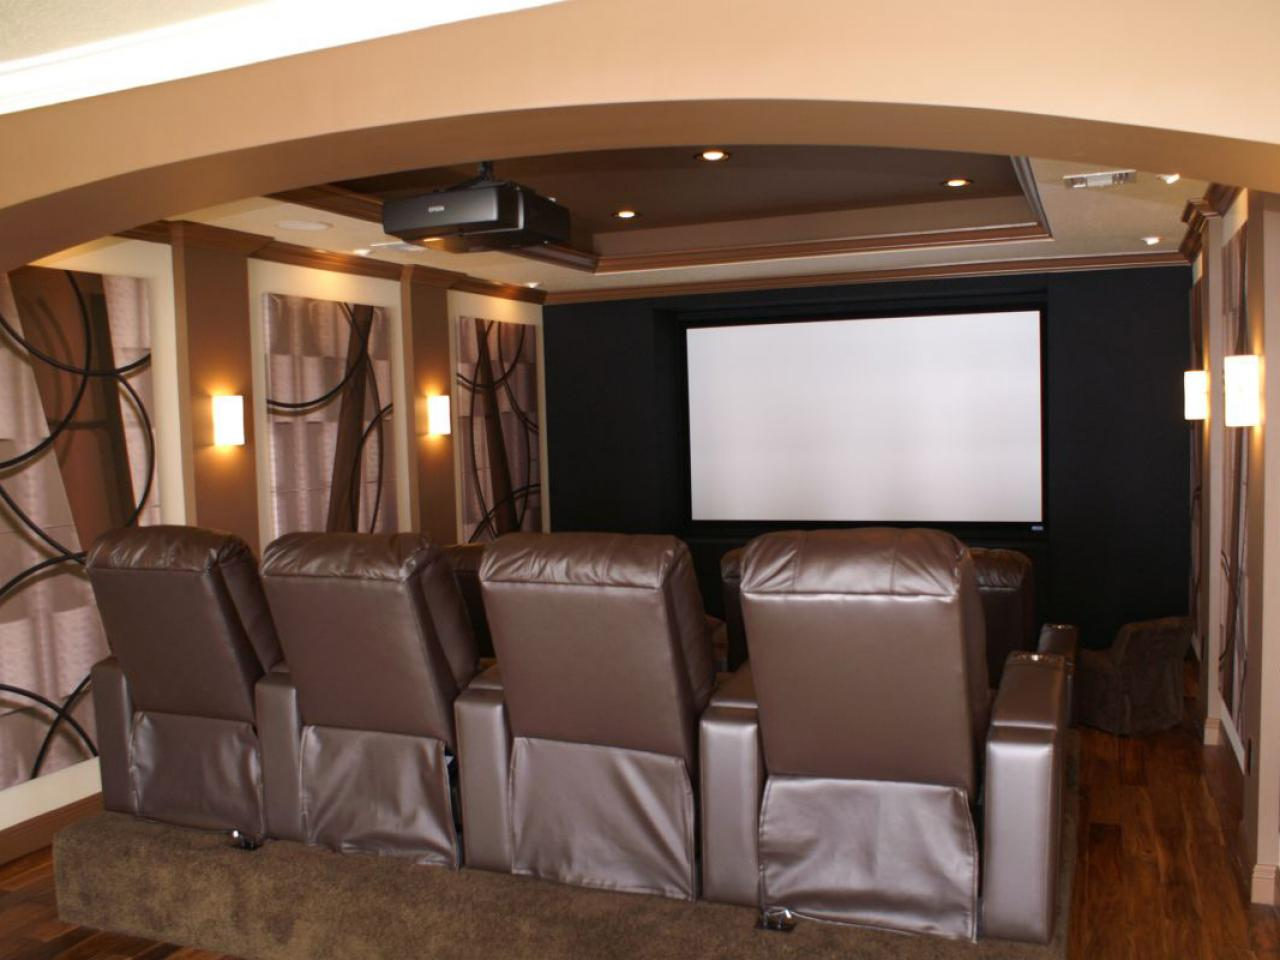 How to build a home theater hgtv - Home theater room design ideas ...